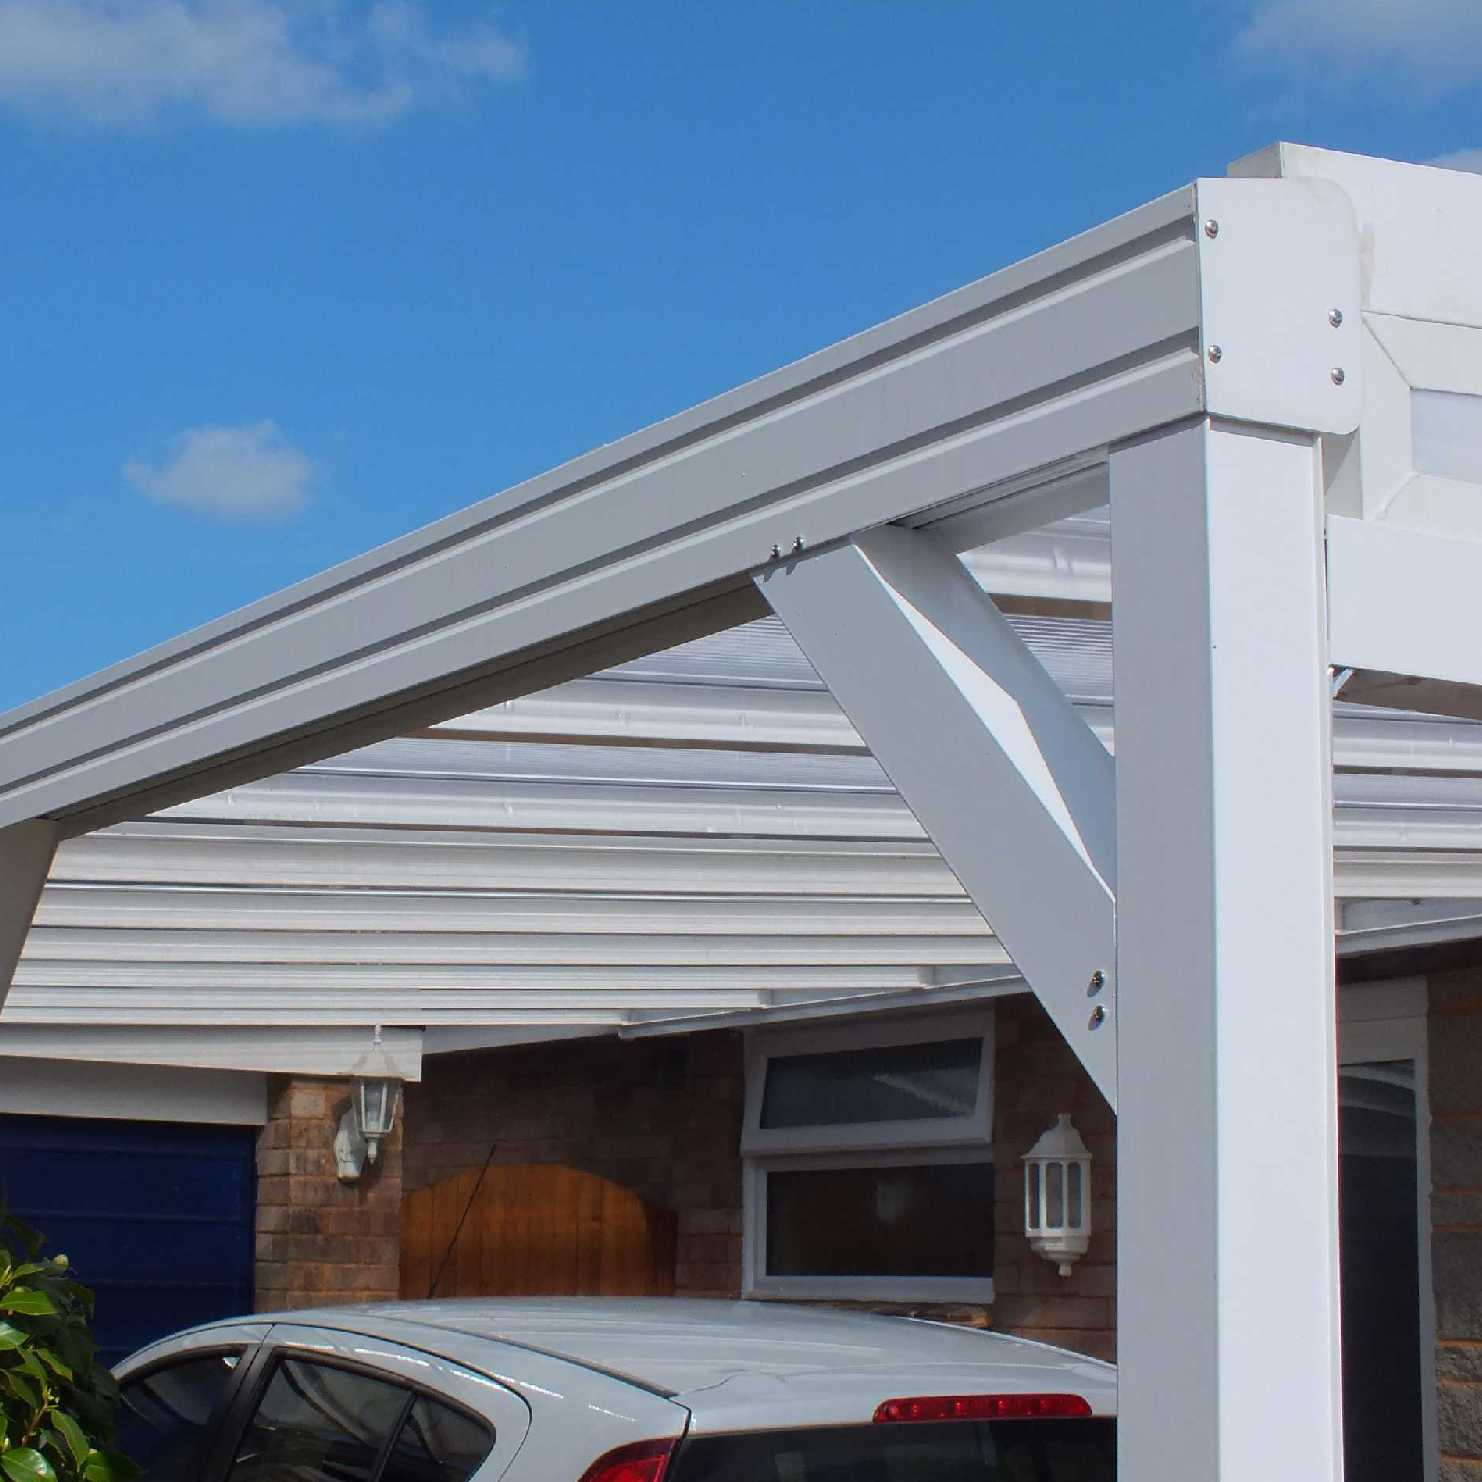 Great deals on Omega Smart White Lean-To Canopy with 16mm Polycarbonate Glazing - 12.0m (W) x 3.5m (P), (5) Supporting Posts